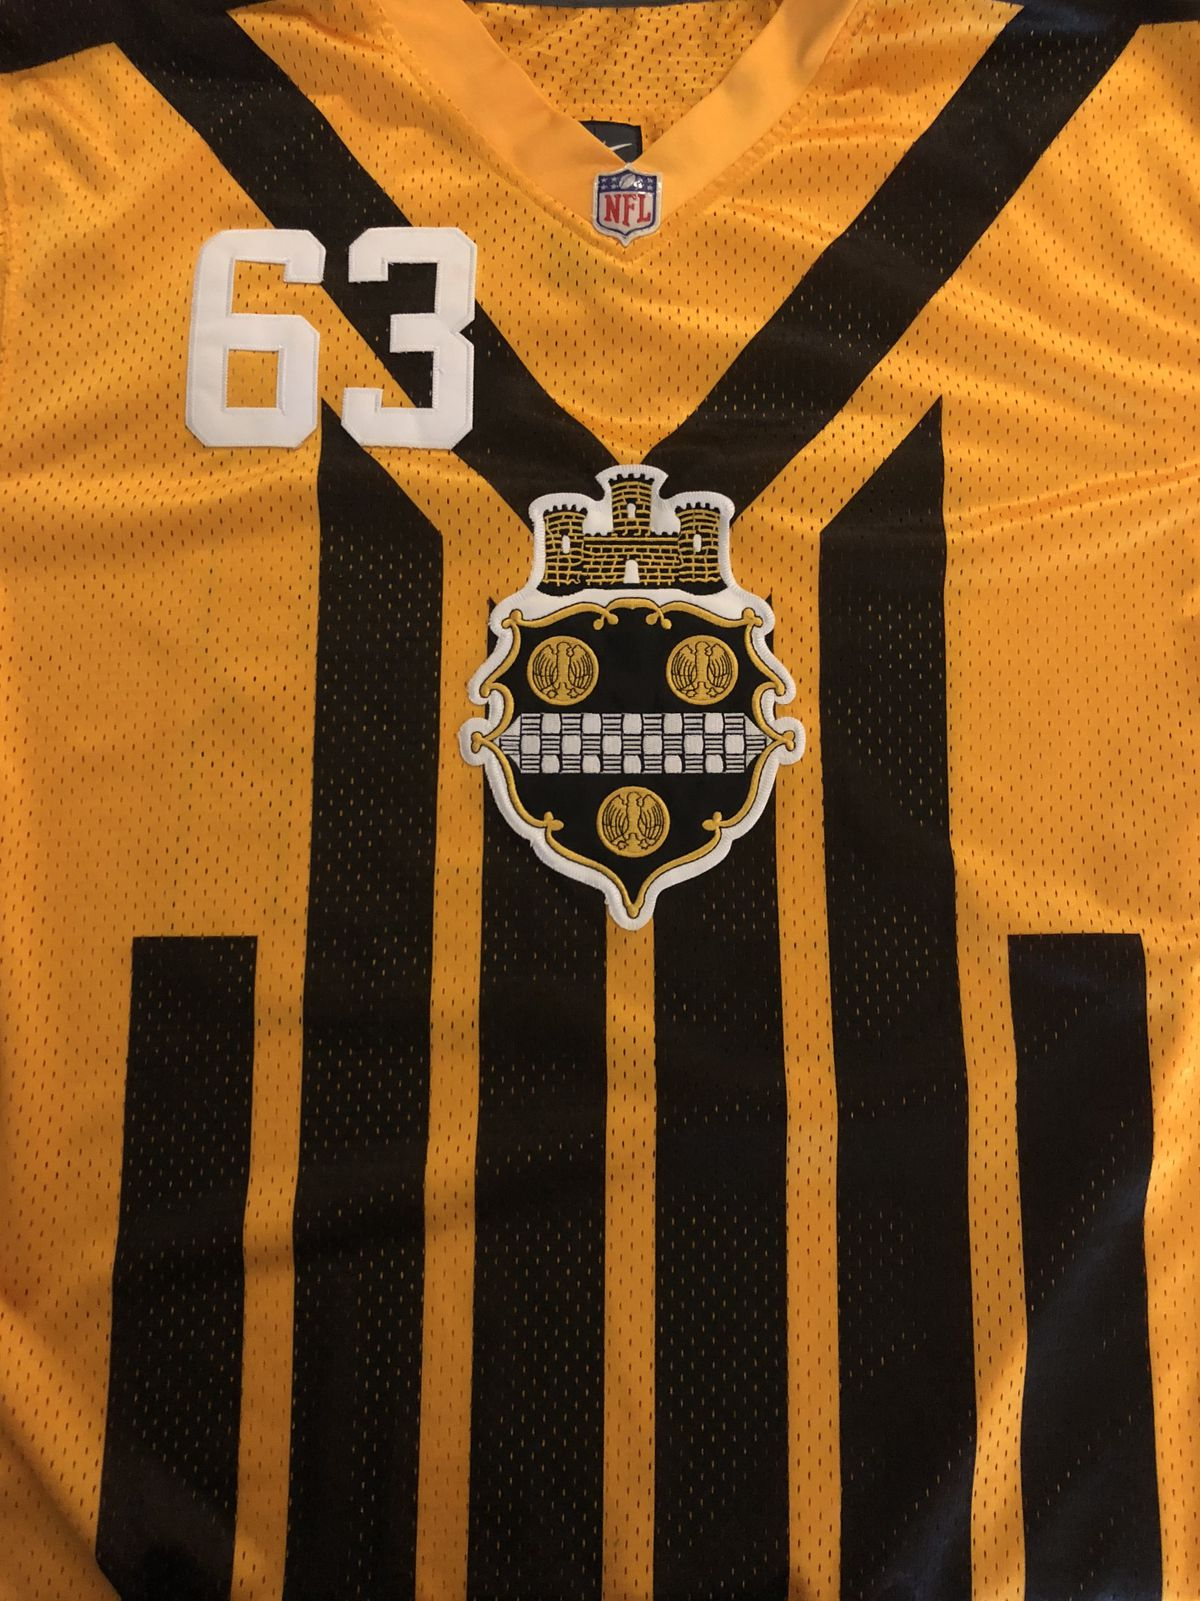 977b4f7f4 The Steelers are unveiling new throwback uniforms but what will the ...